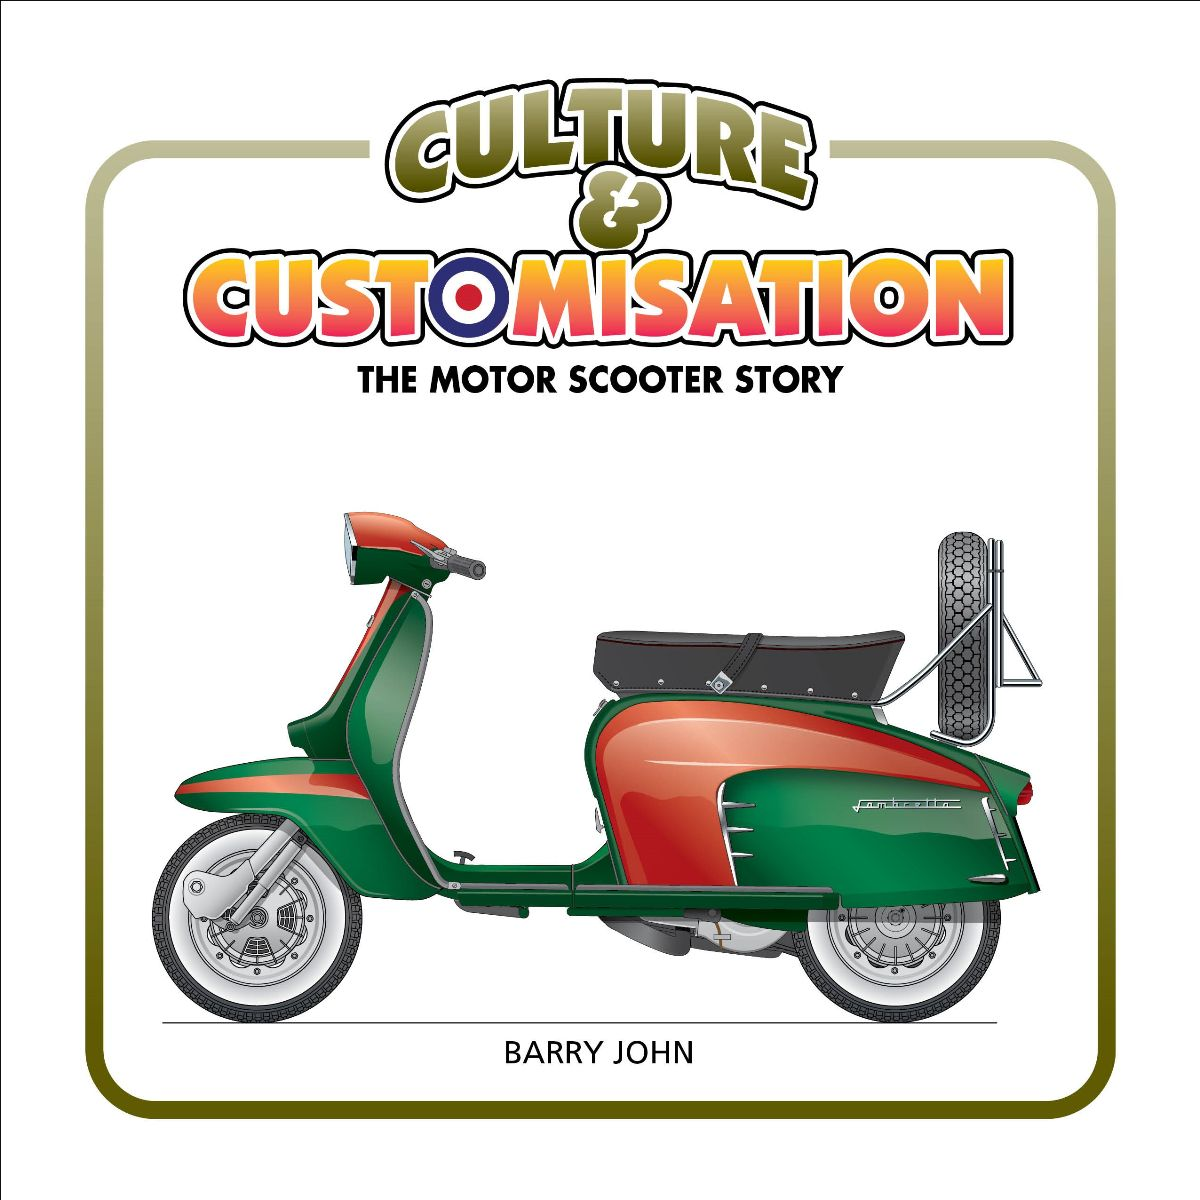 Culture & Customisation The Motor Scooter Story, by Barry John